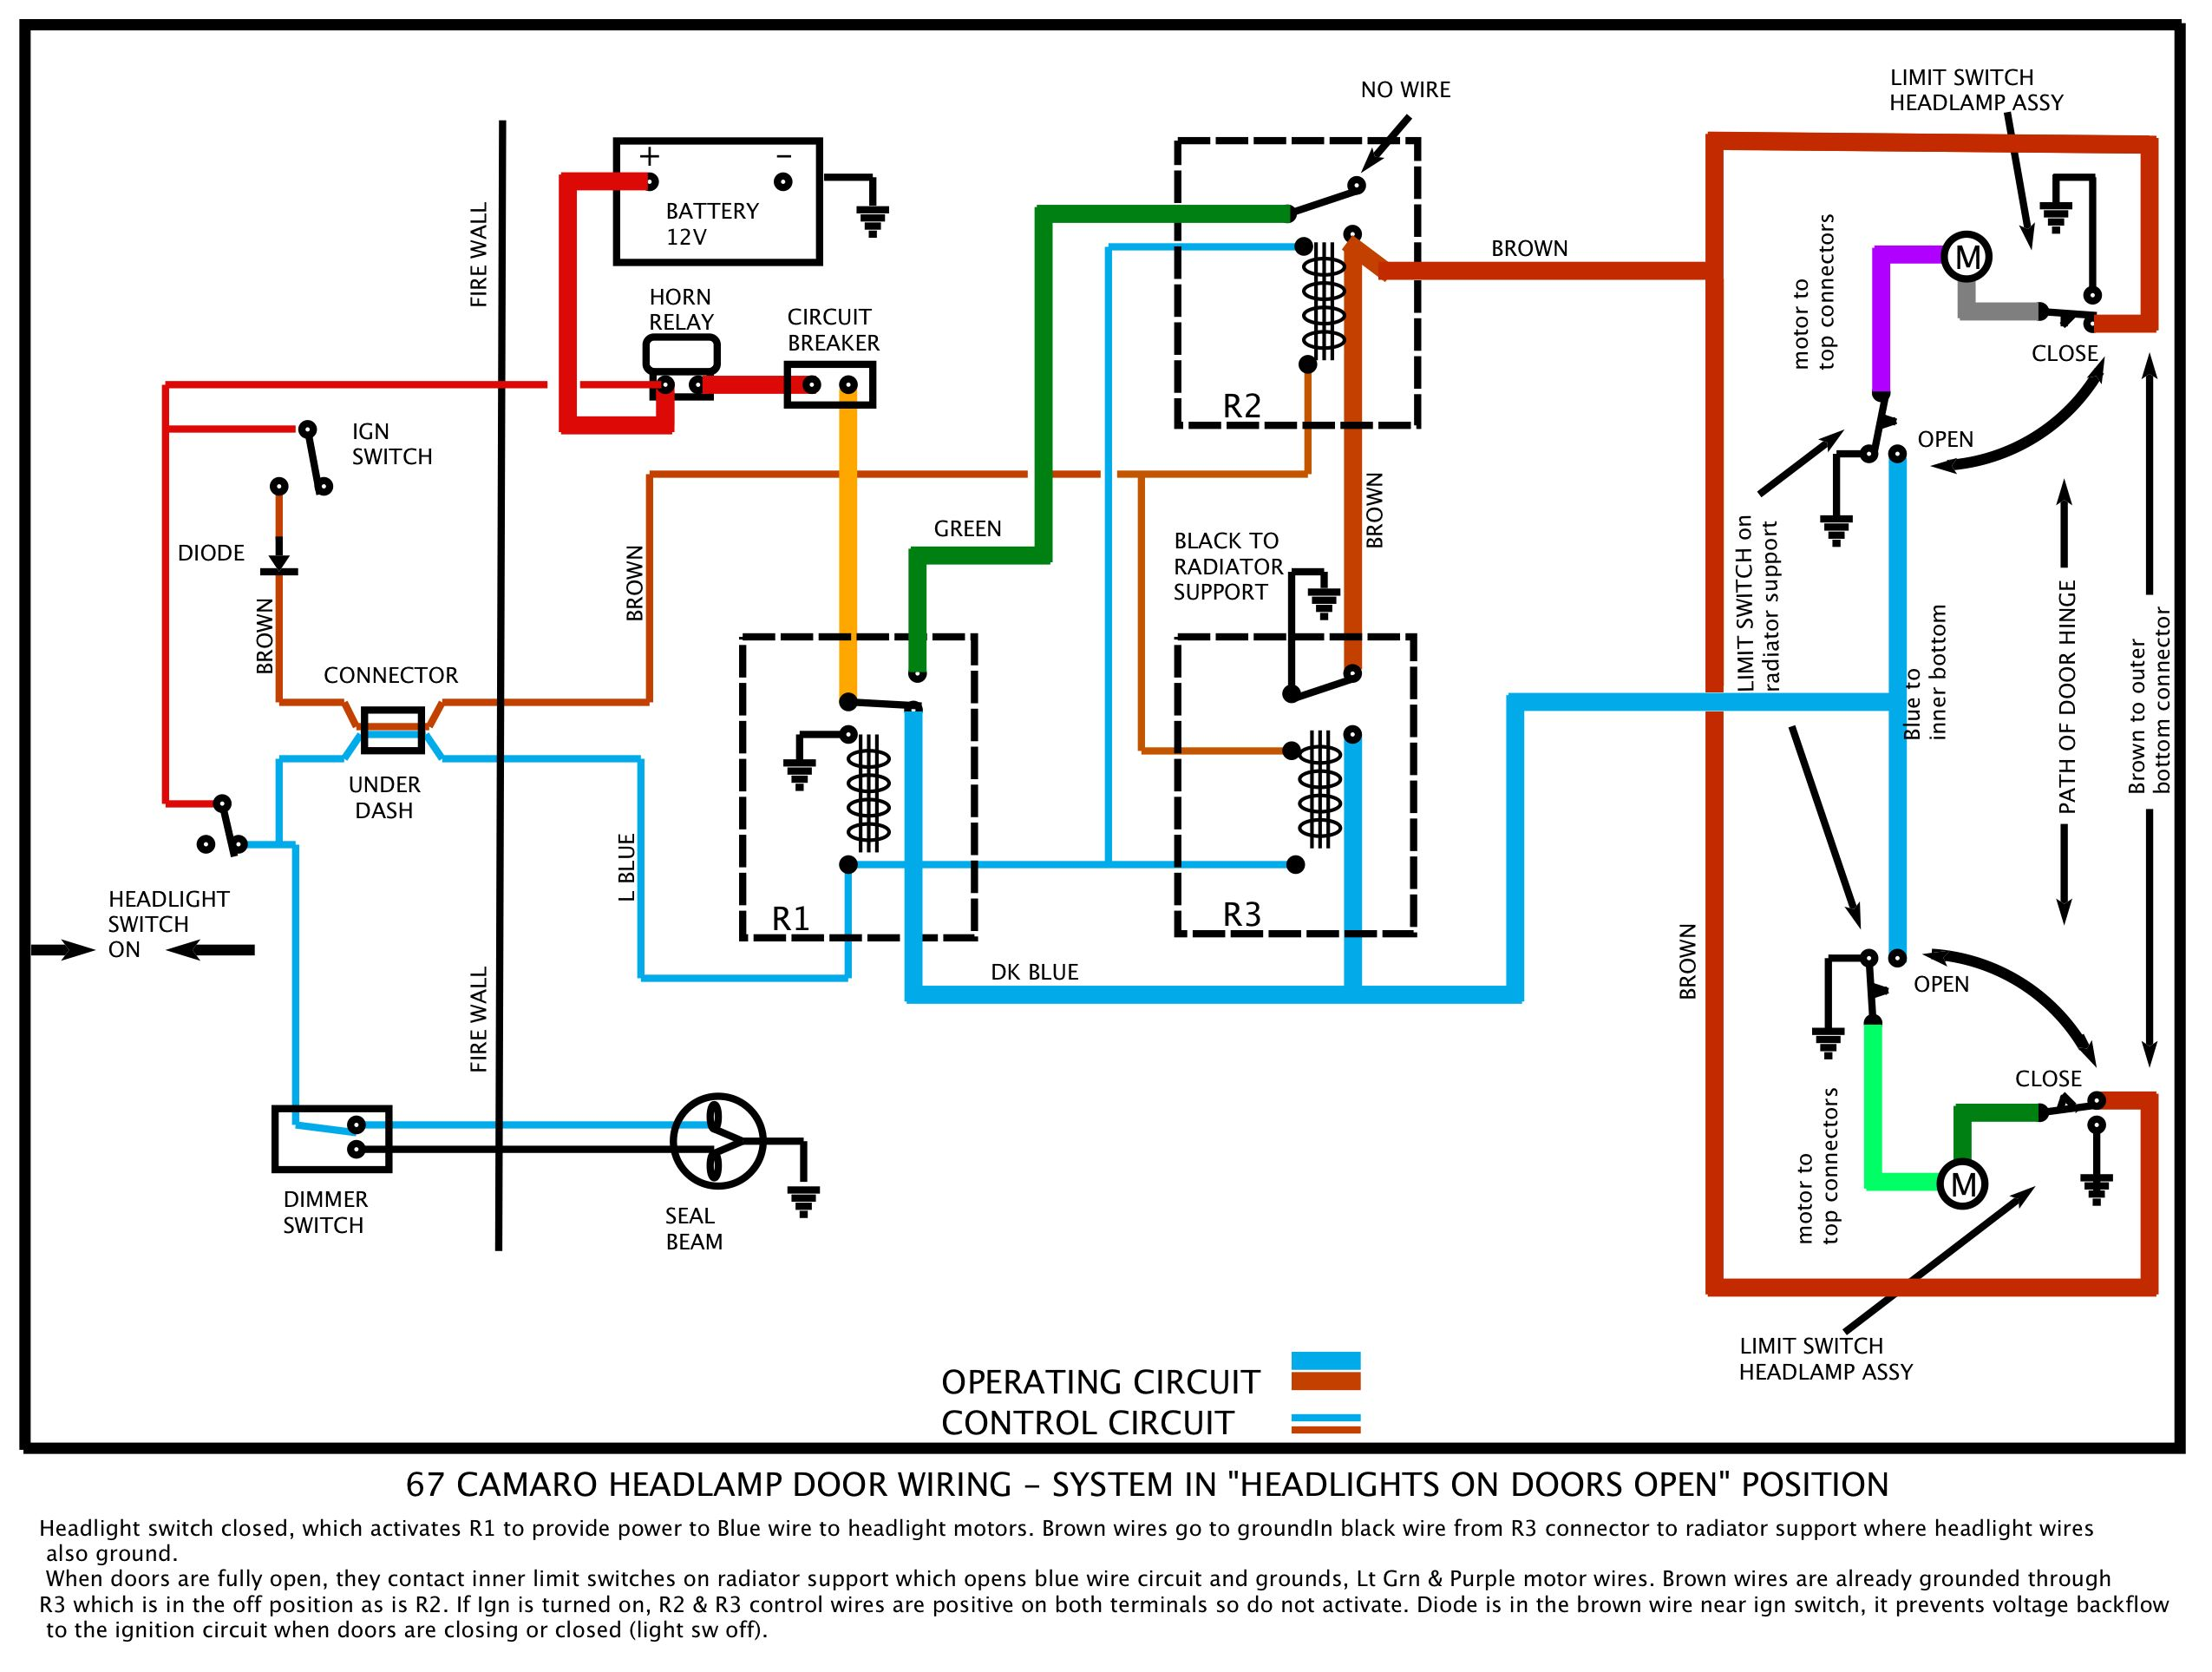 350Z Headlight Wiring Diagram from www.pozziracing.com